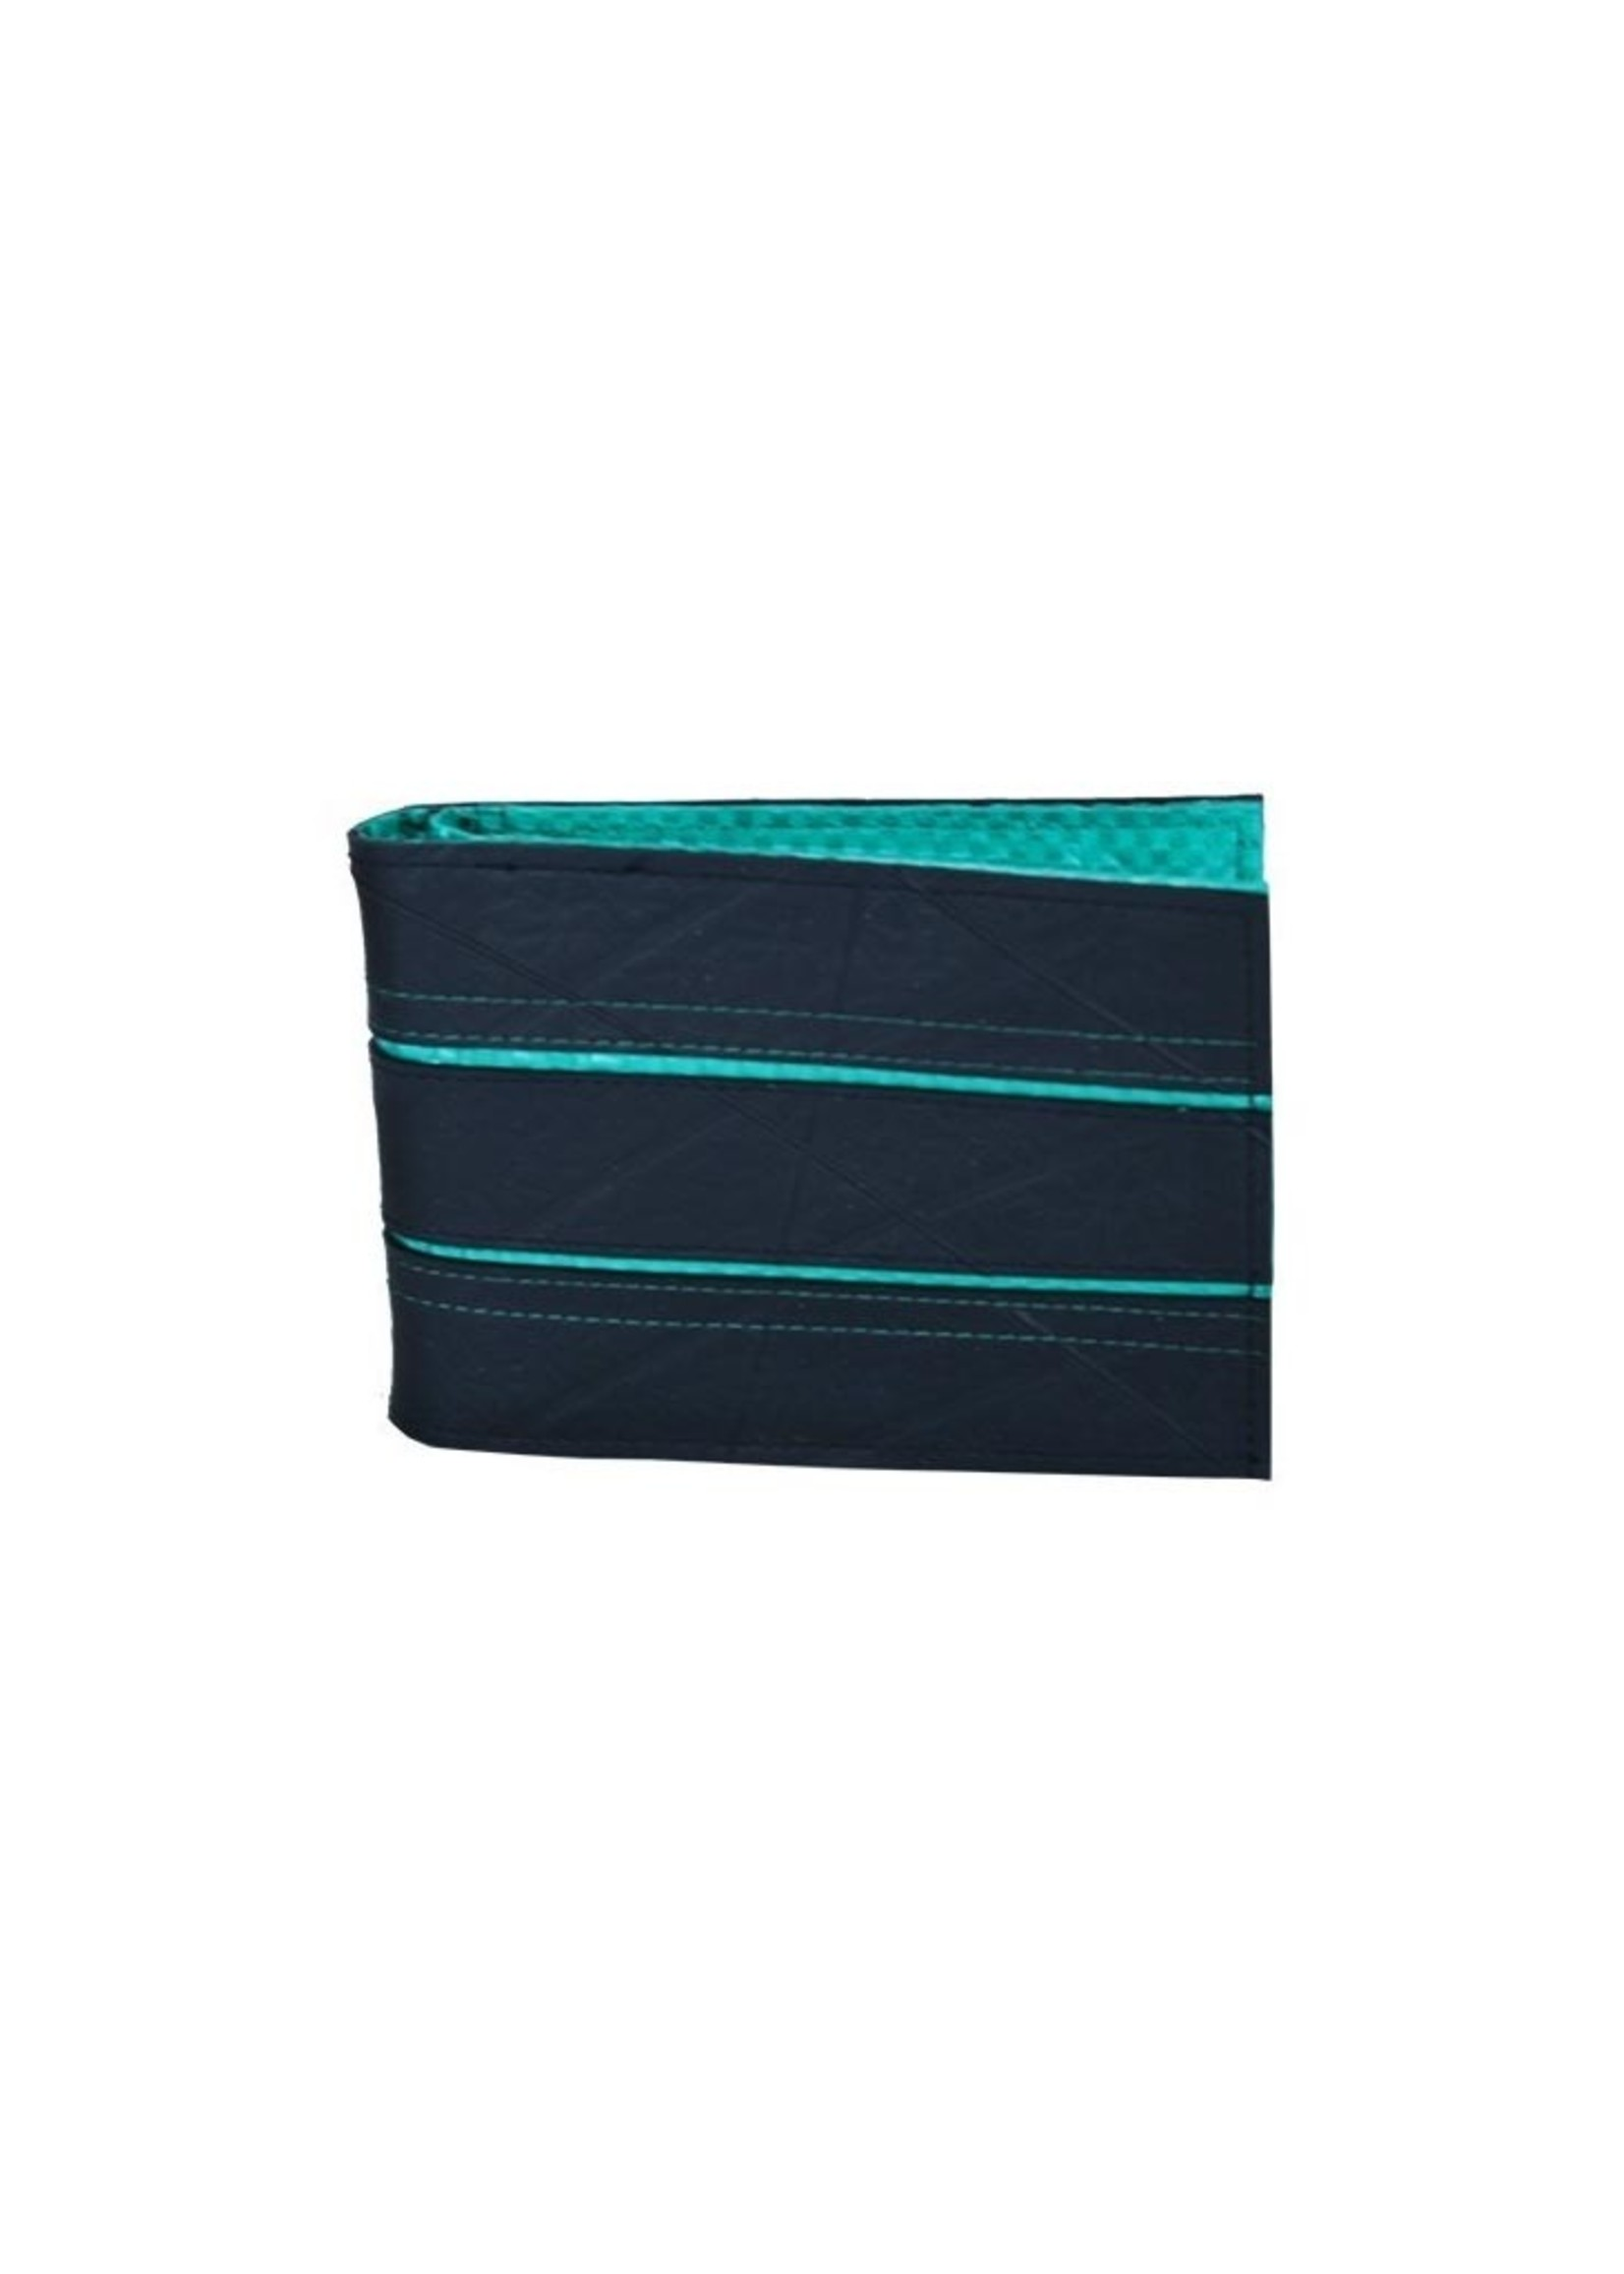 Malia Designs Recycled Tire Wallet